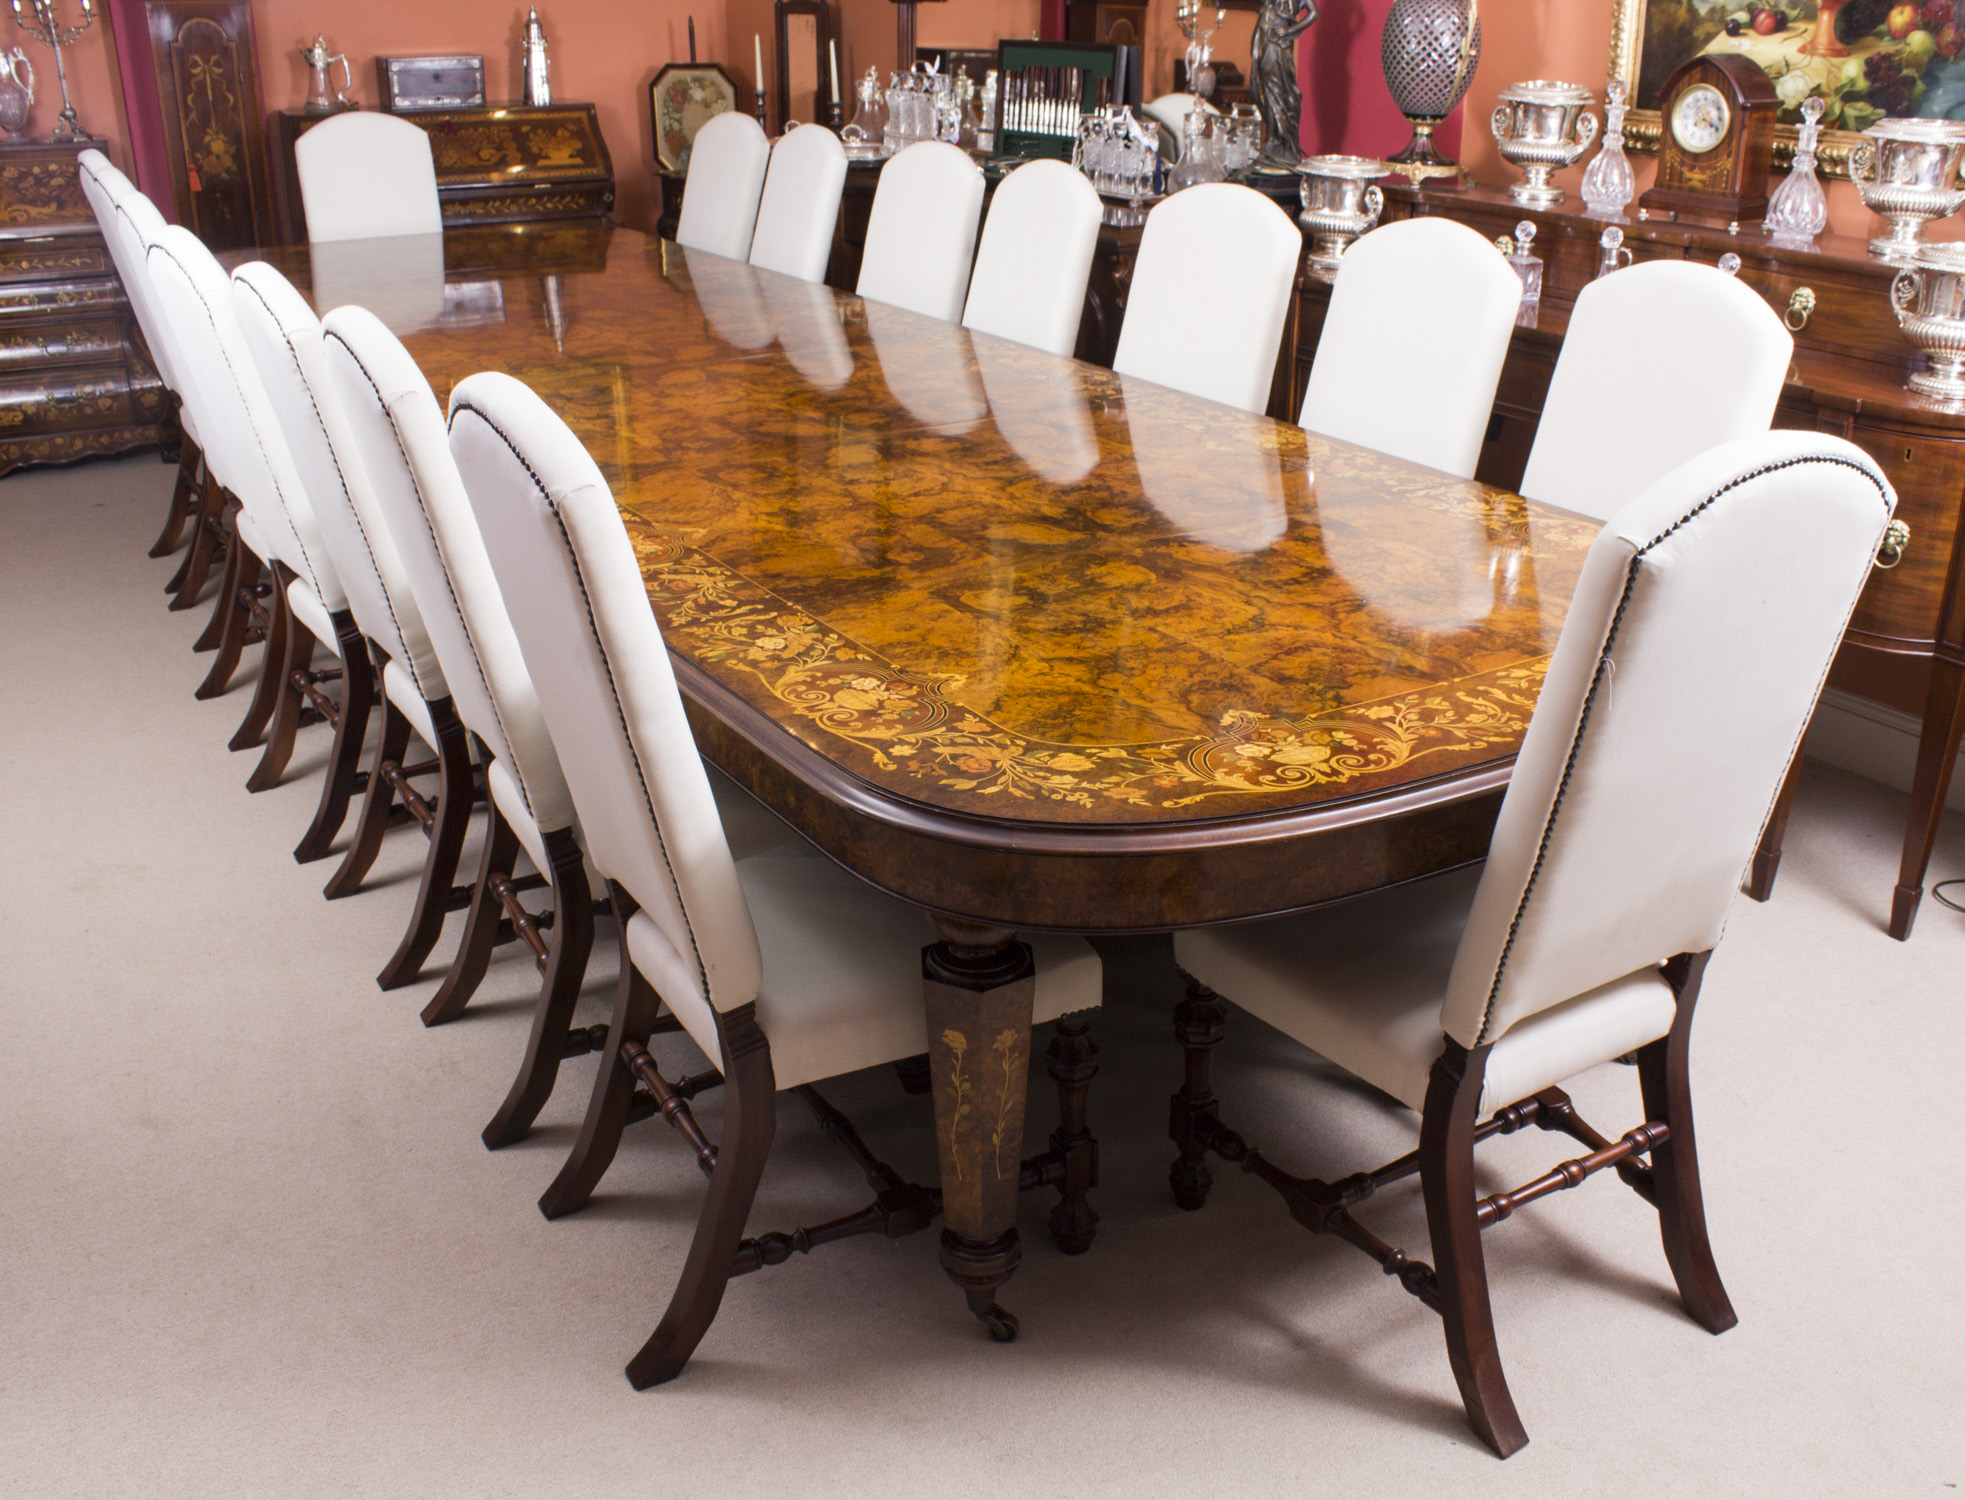 Bespoke dining table design - Large Victorian Dining Table Chairs Set Large Dining Table Chairs